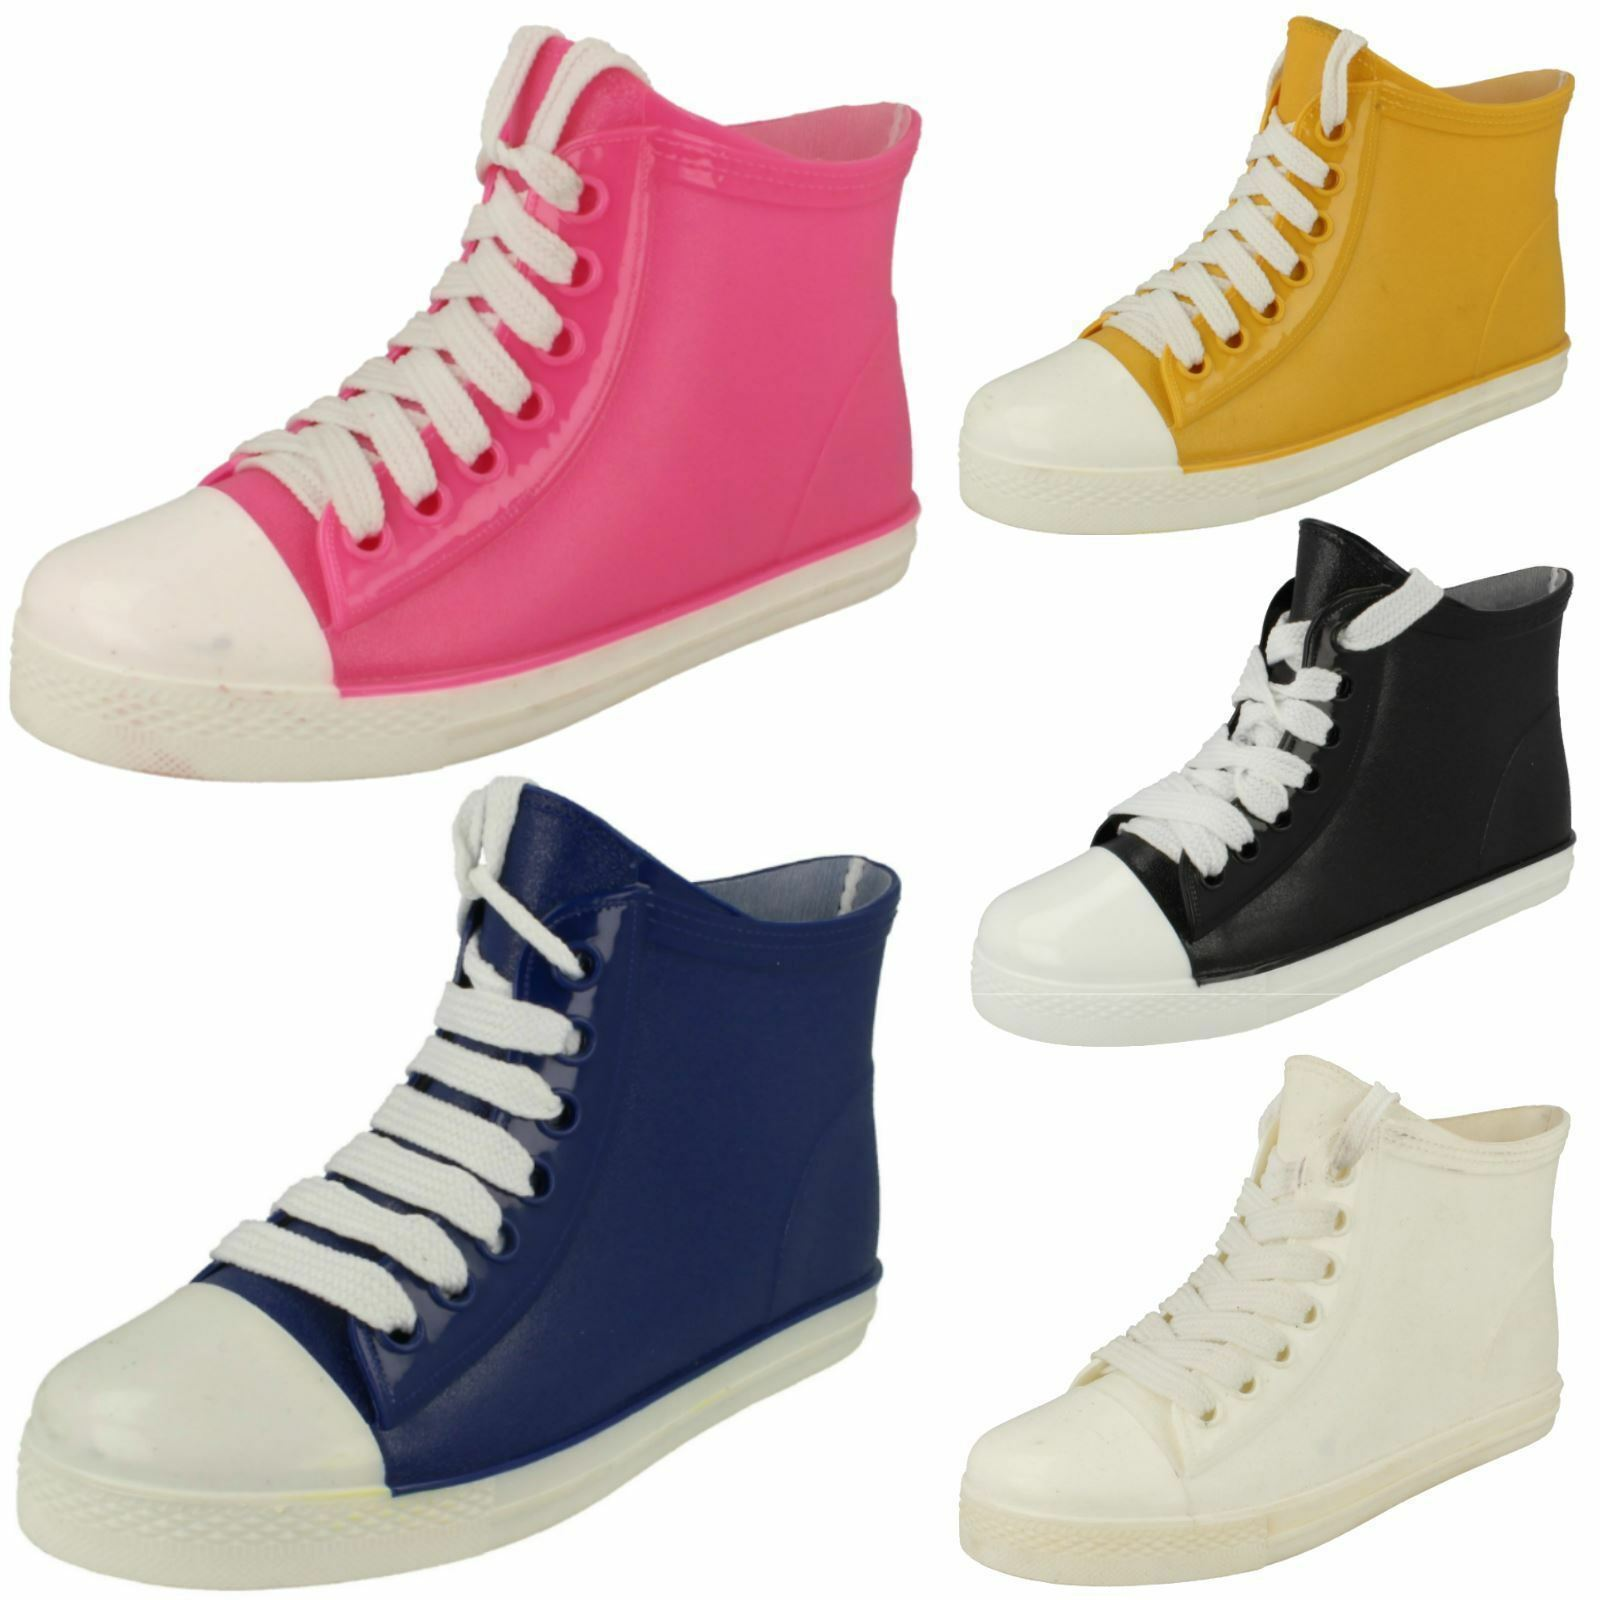 Ladies F4357 baseball ankle wellington boots by SPOT ON SALE NOW £9.99